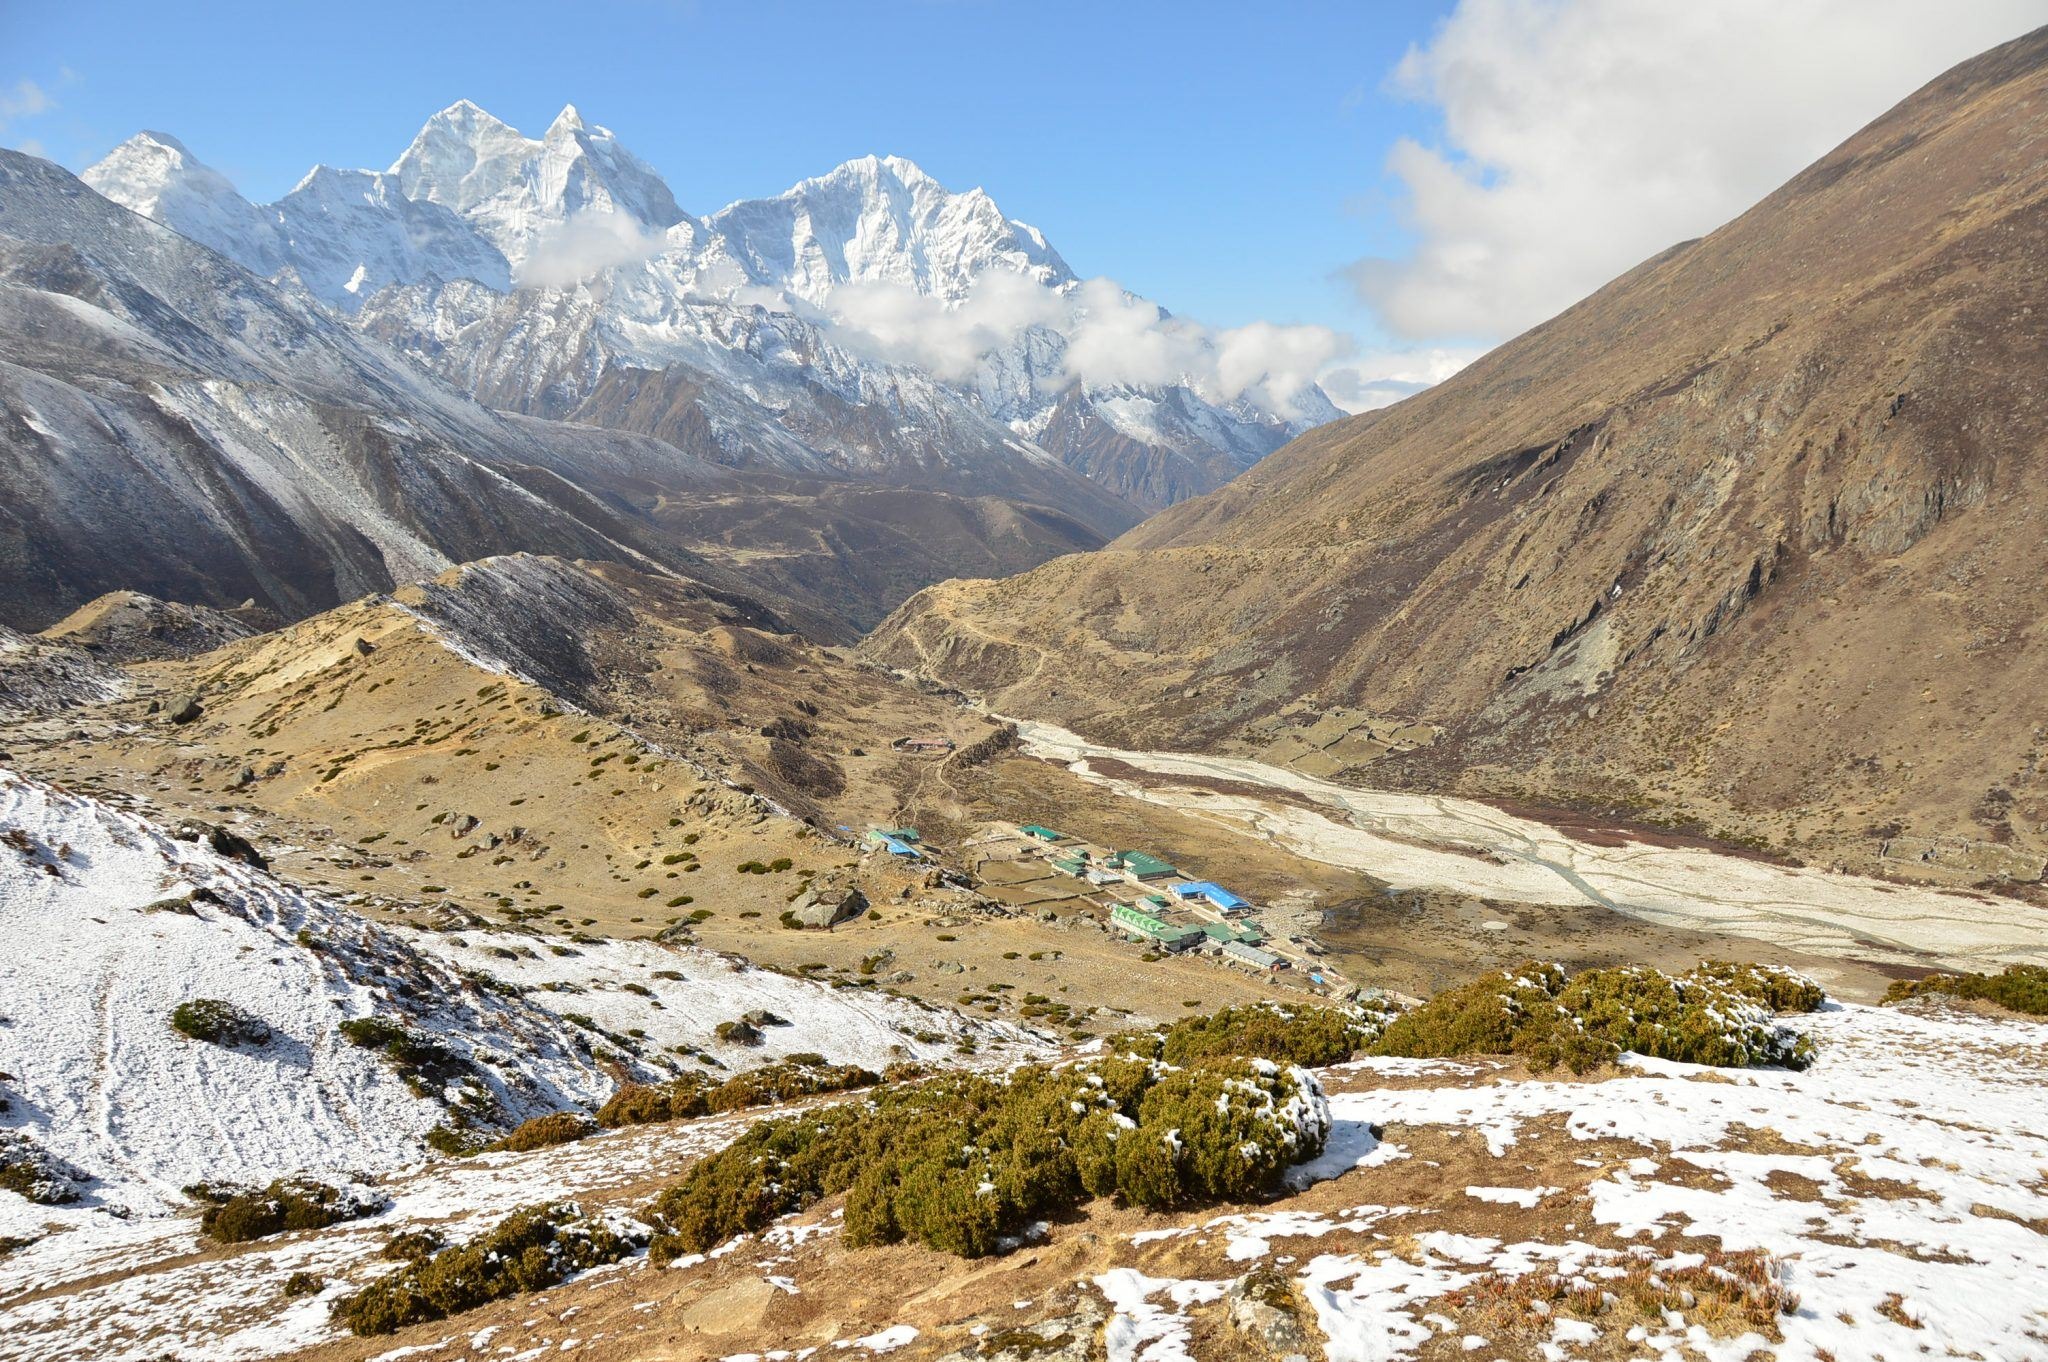 Stunning views on Day 7 of the Everest Base Camp Trek